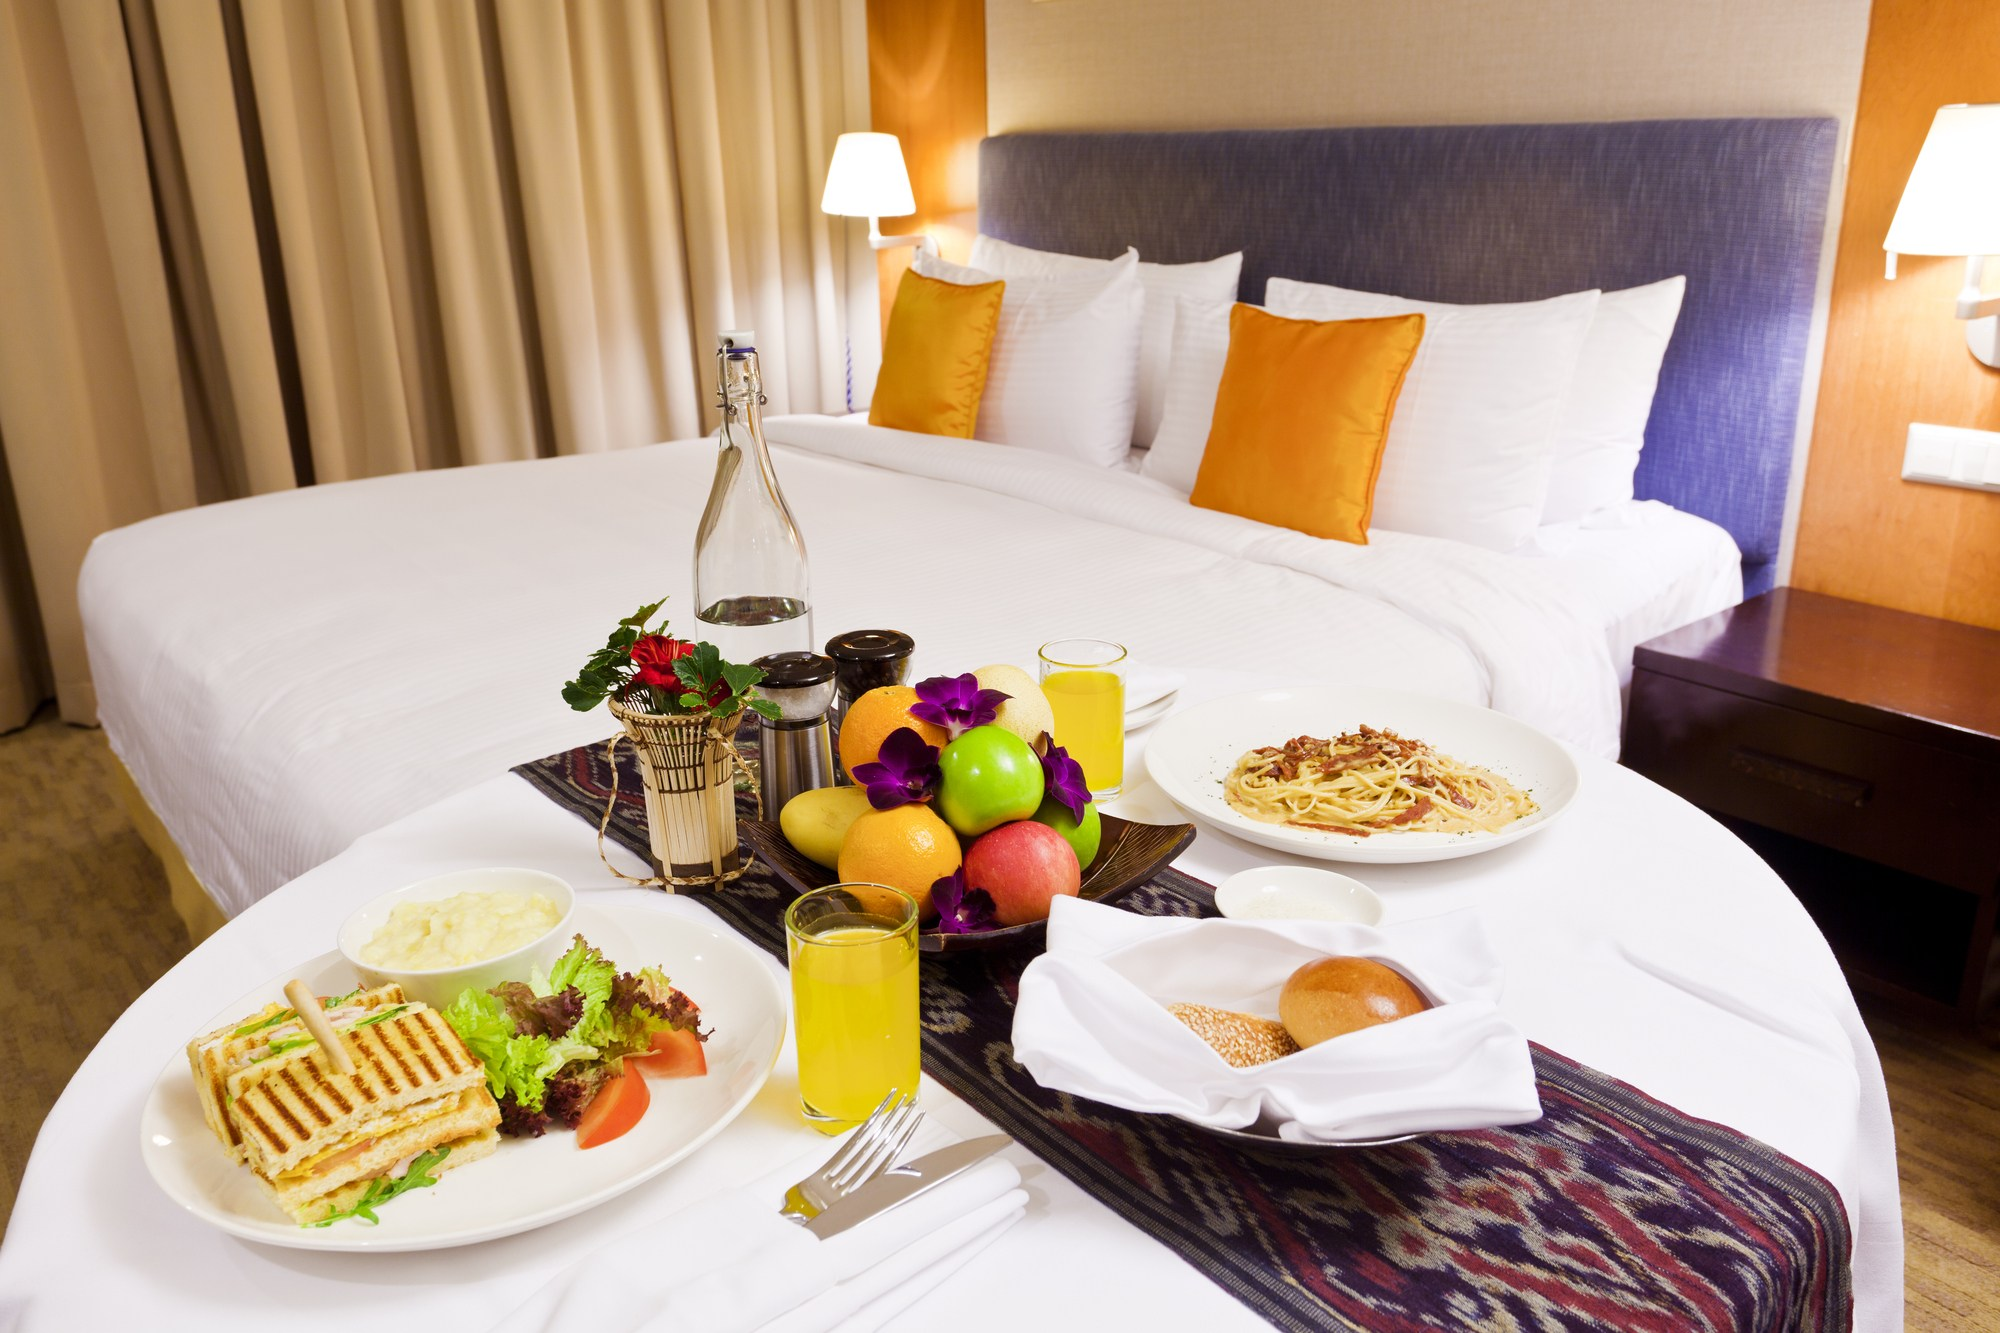 Room service can make travel easier for families